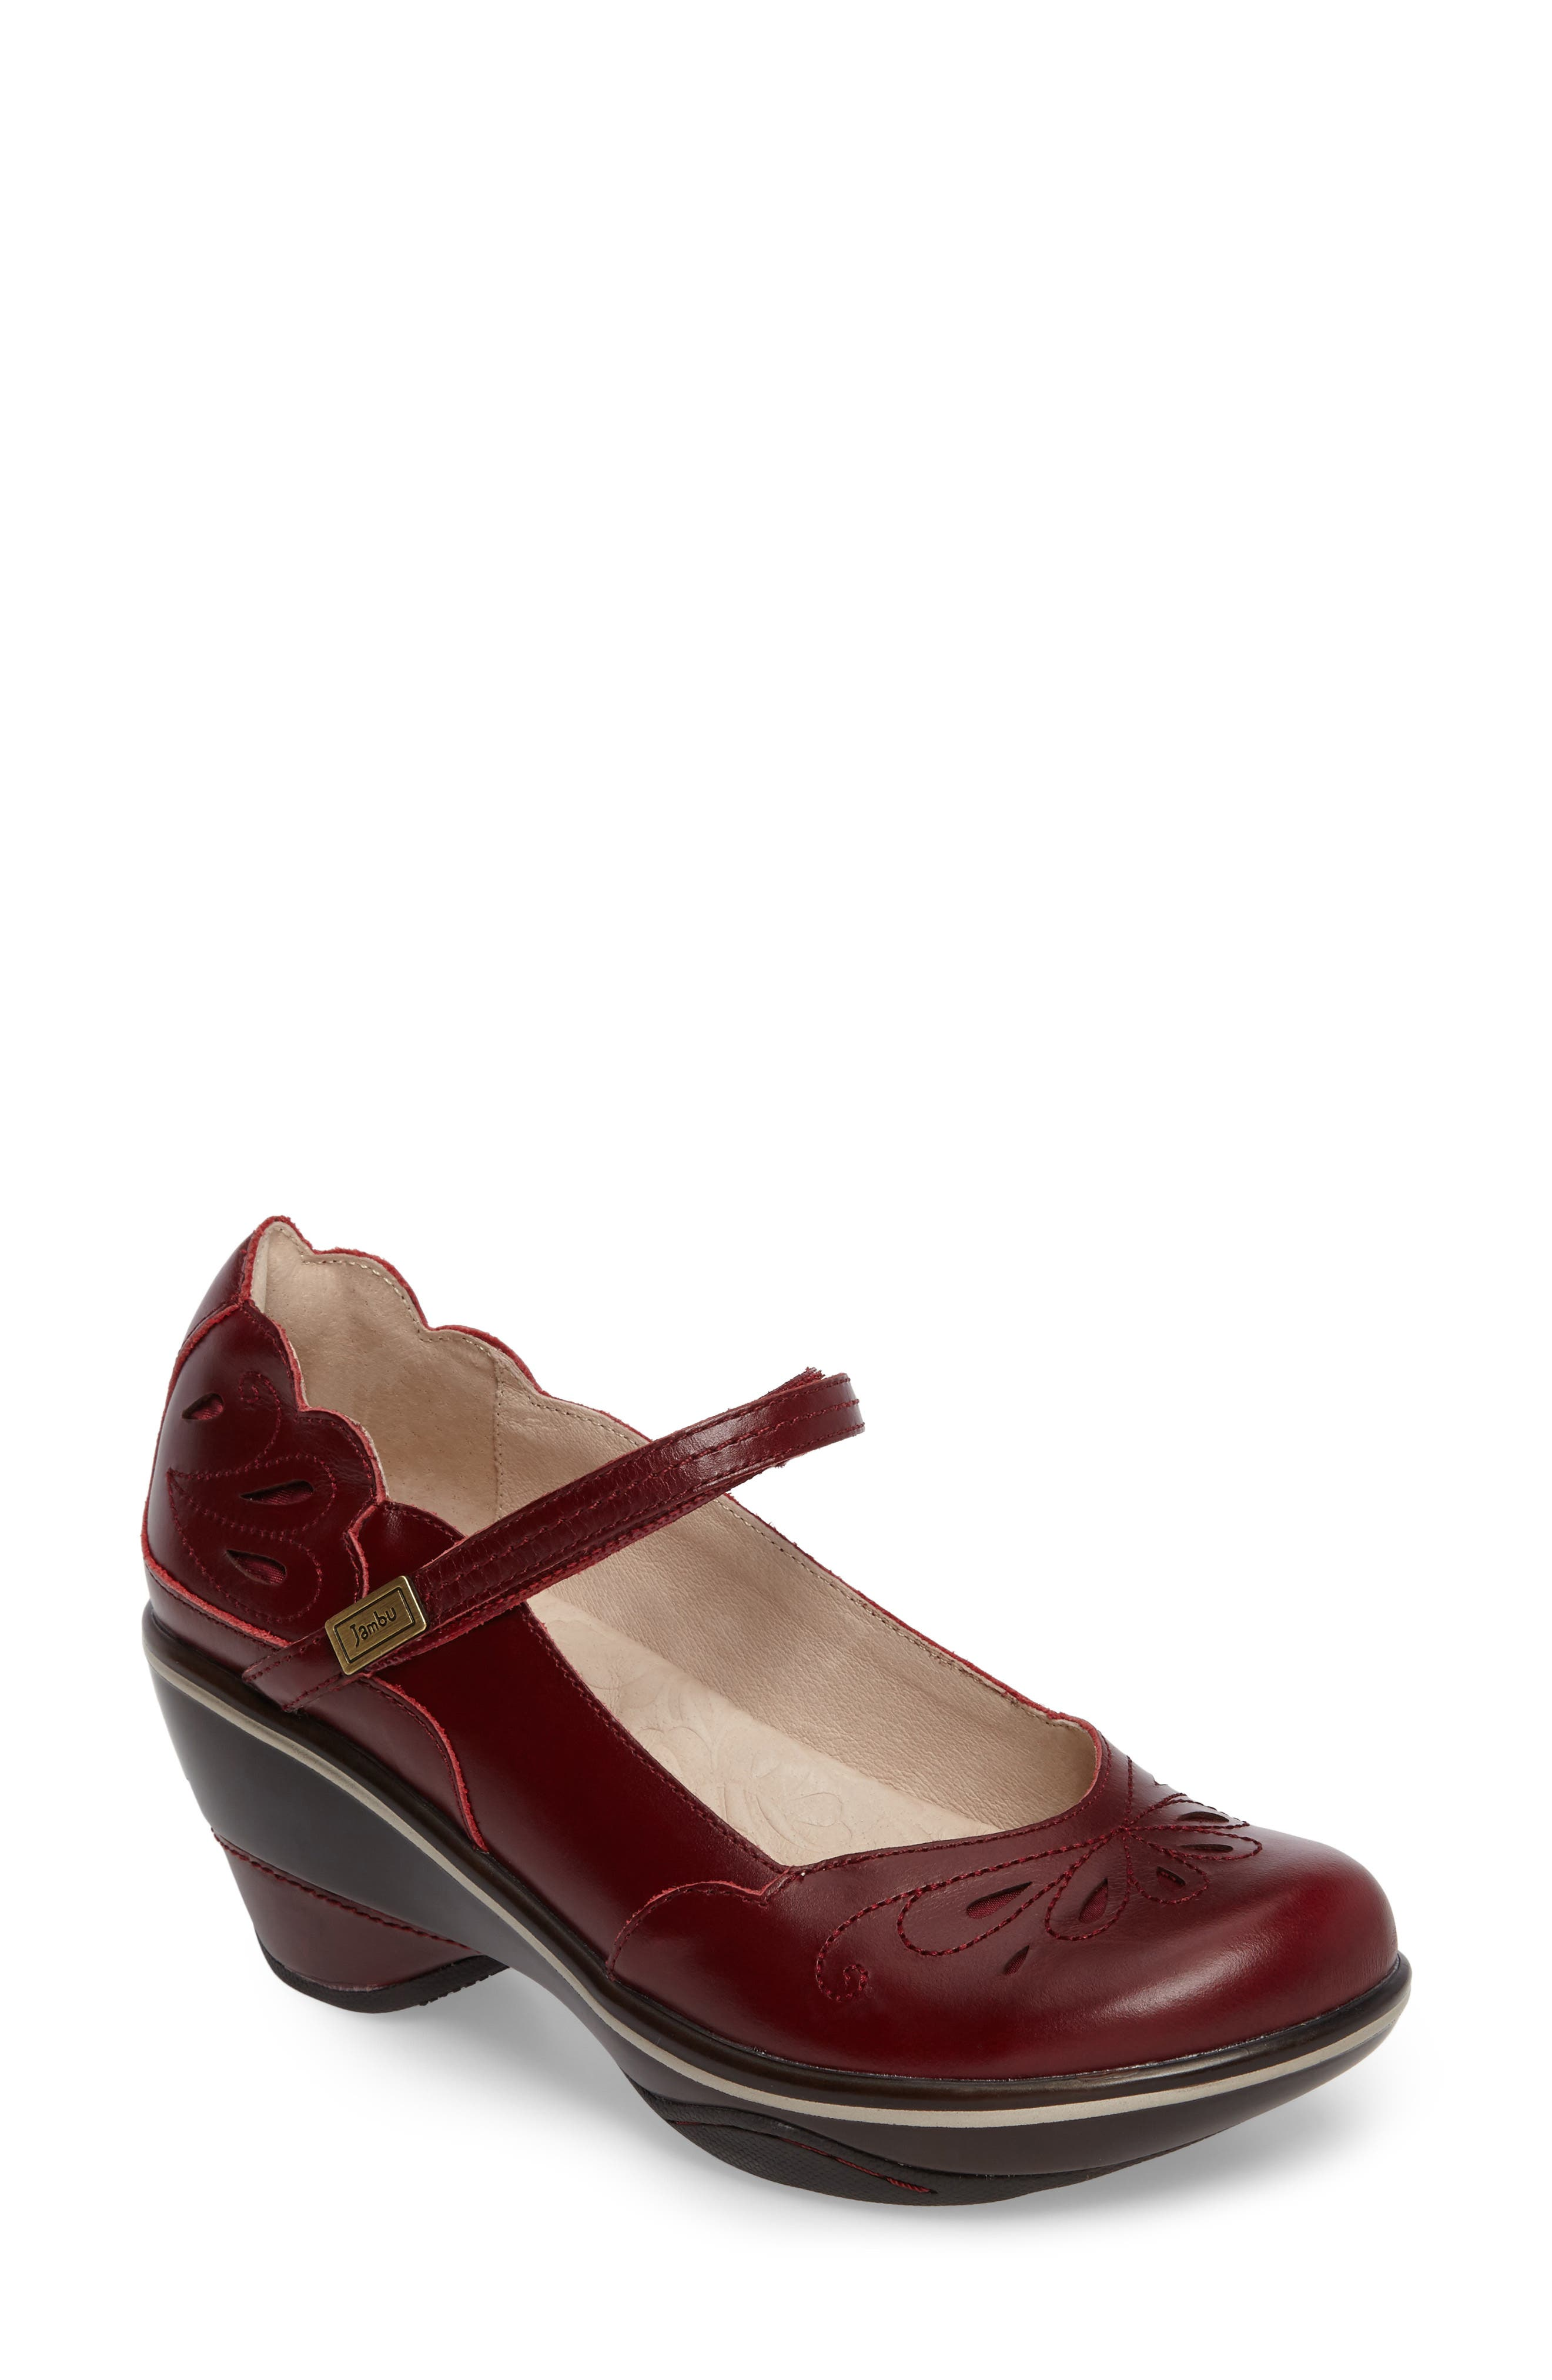 'Bombay' Pump,                         Main,                         color, Red Leather